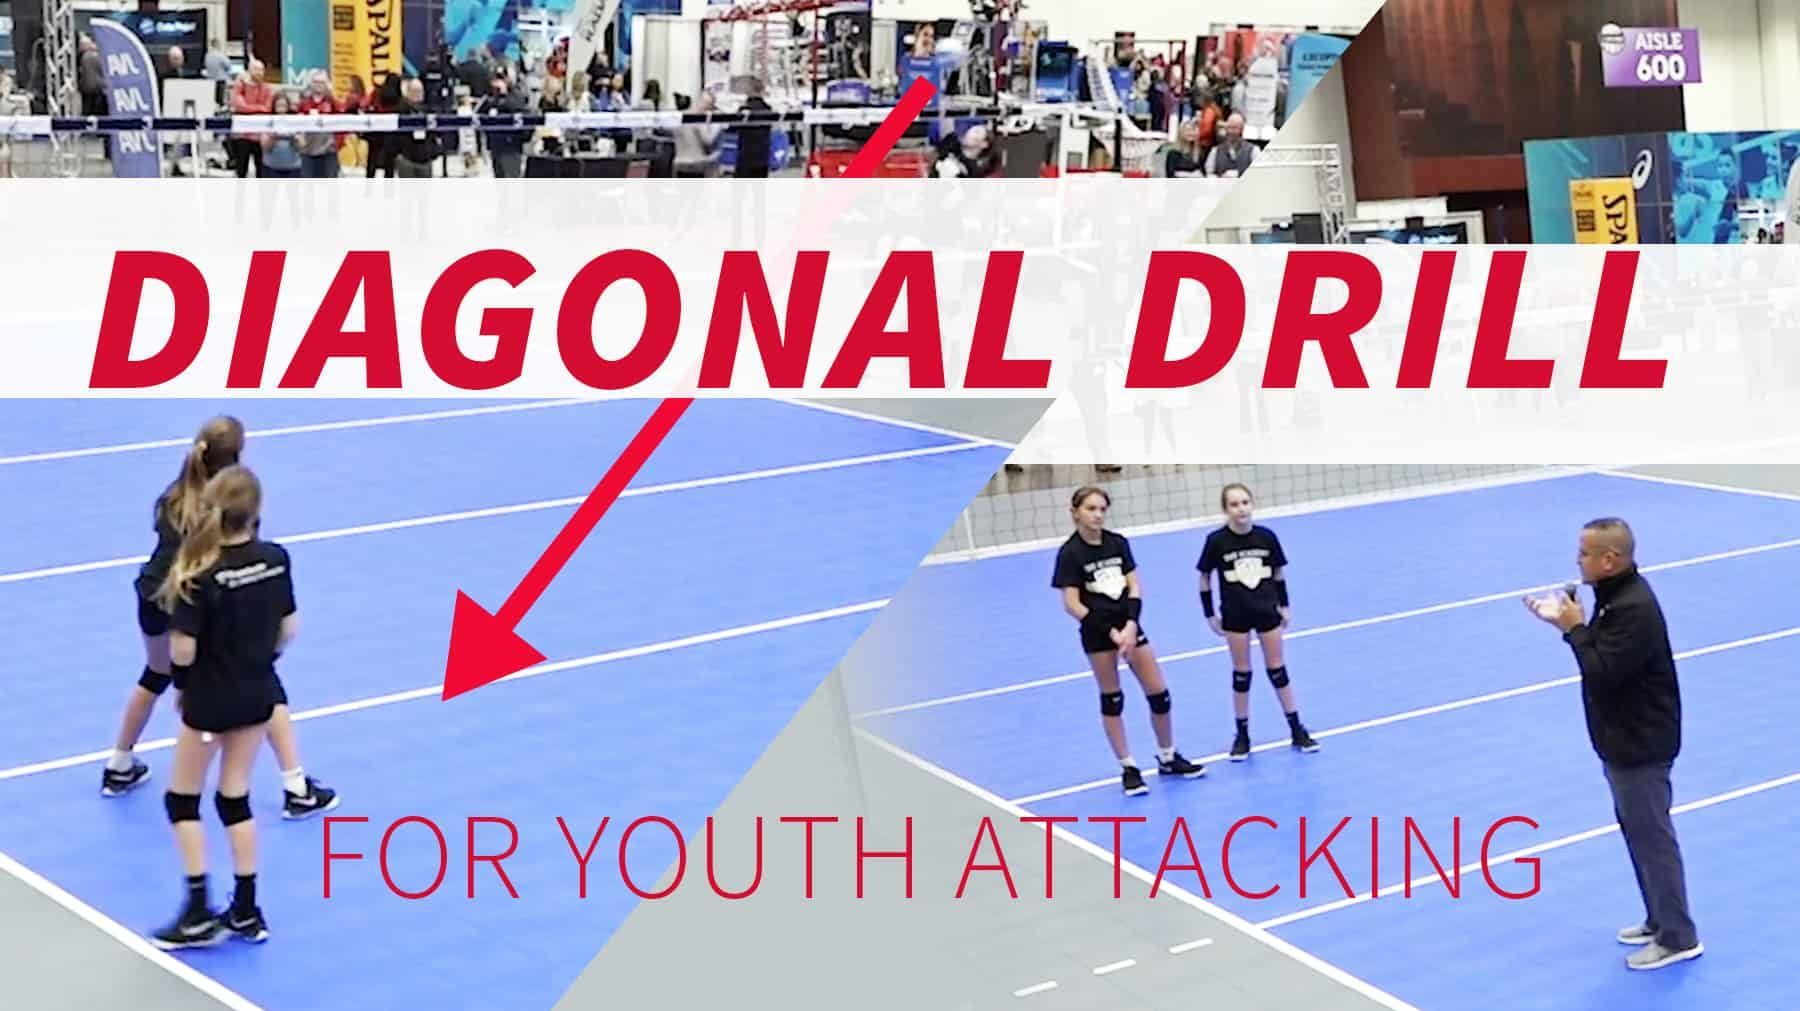 Diagonal Drill For Youth Attacking The Art Of Coaching Volleyball Coaching Volleyball Volleyball Skills Volleyball